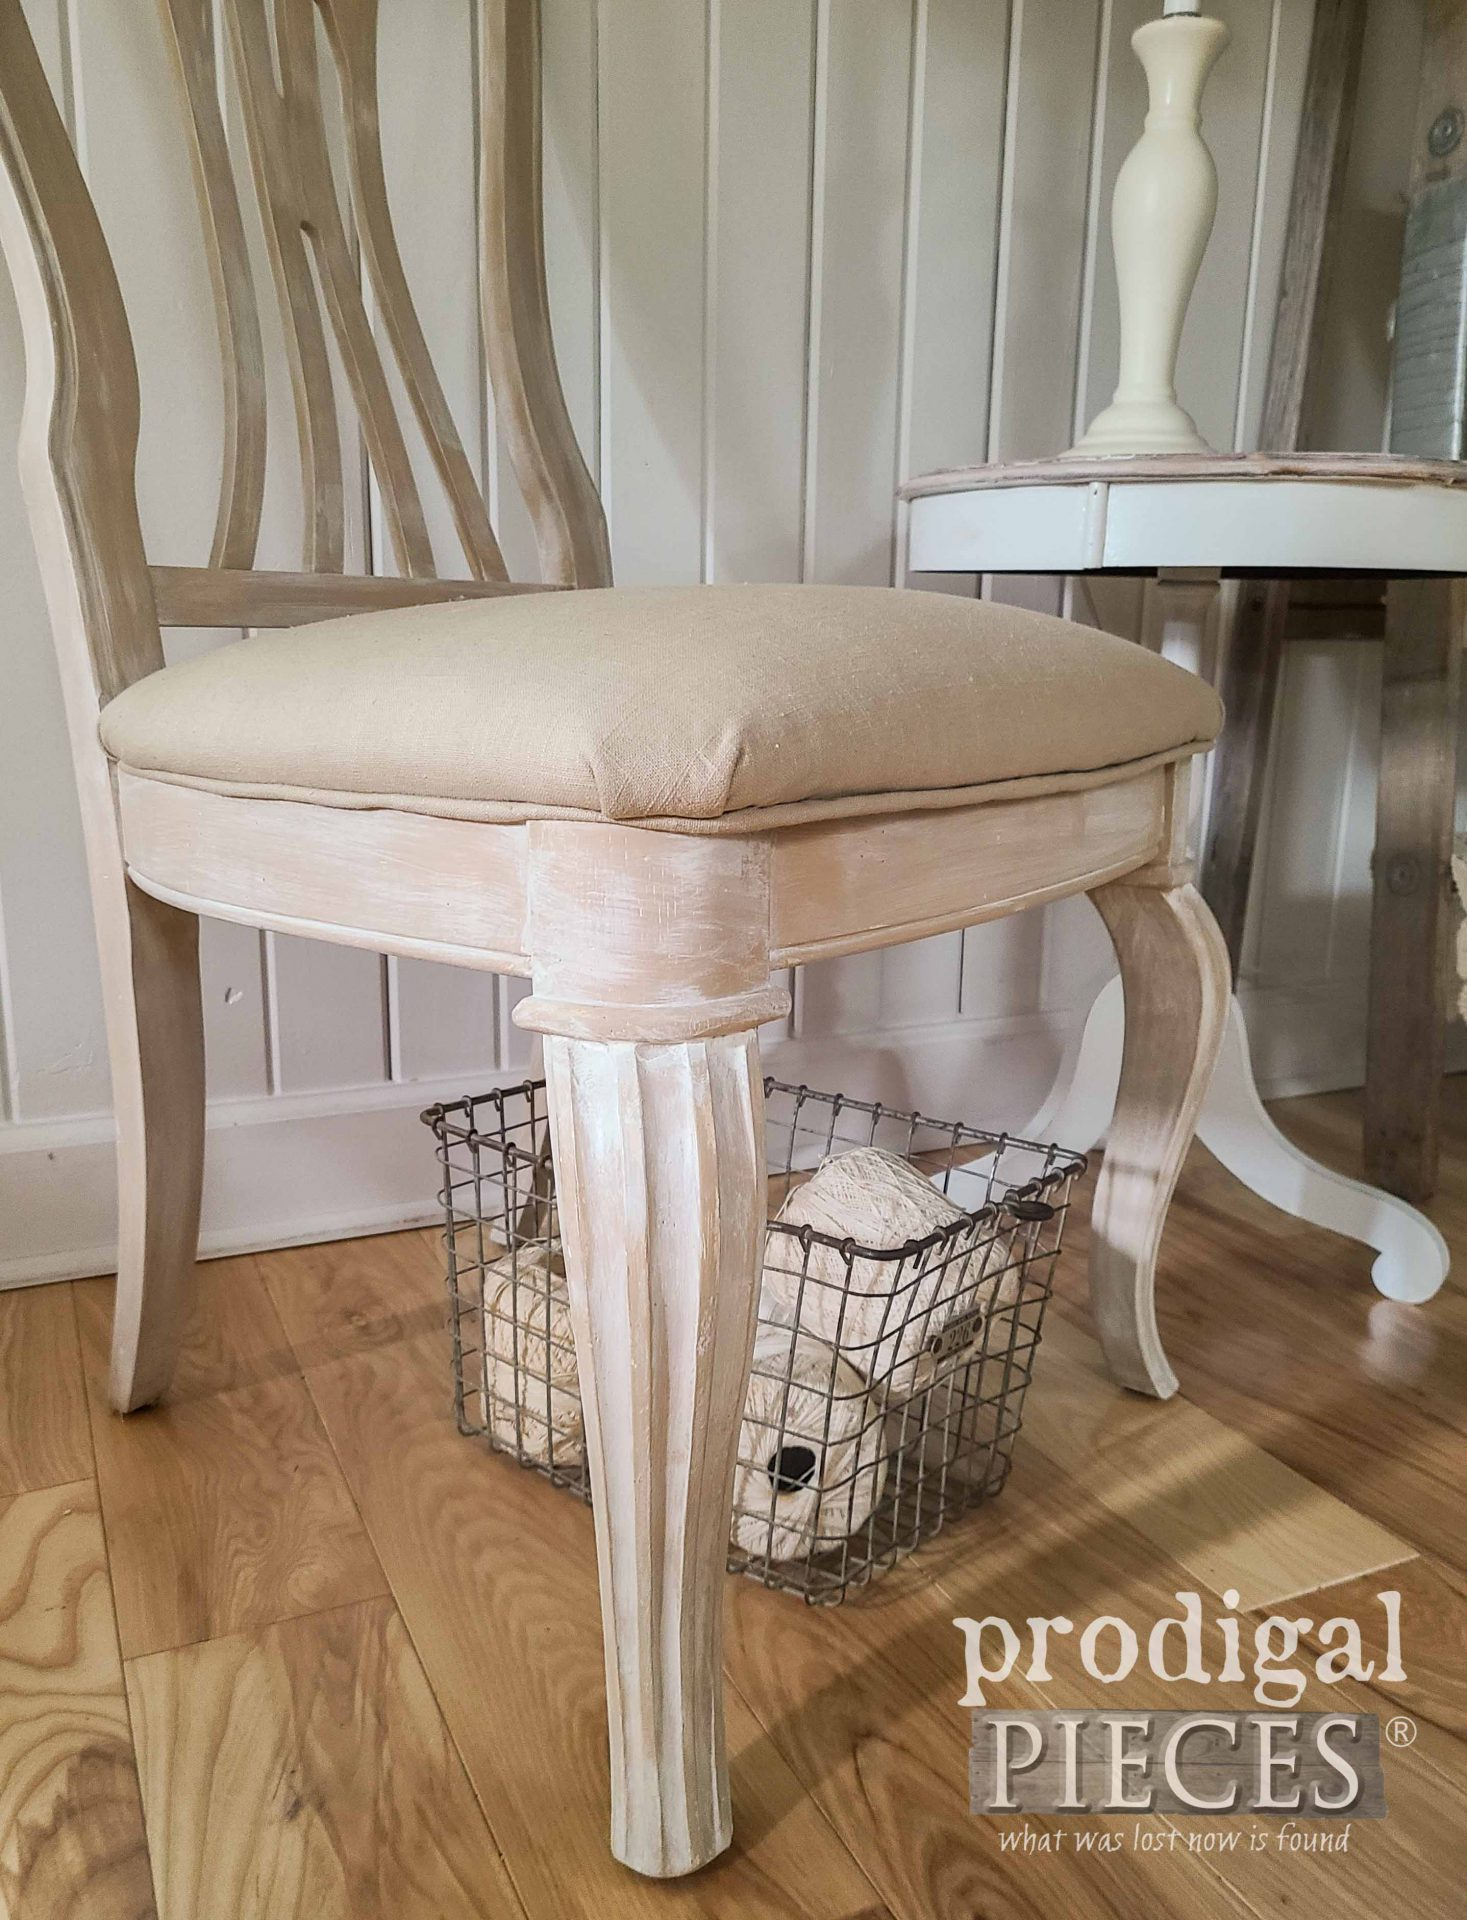 Linen Chair Seat on Upholstered Chair by Prodigal Pieces | prodigalpieces.com #prodigalpieces #diy #furniture #home #homedecor